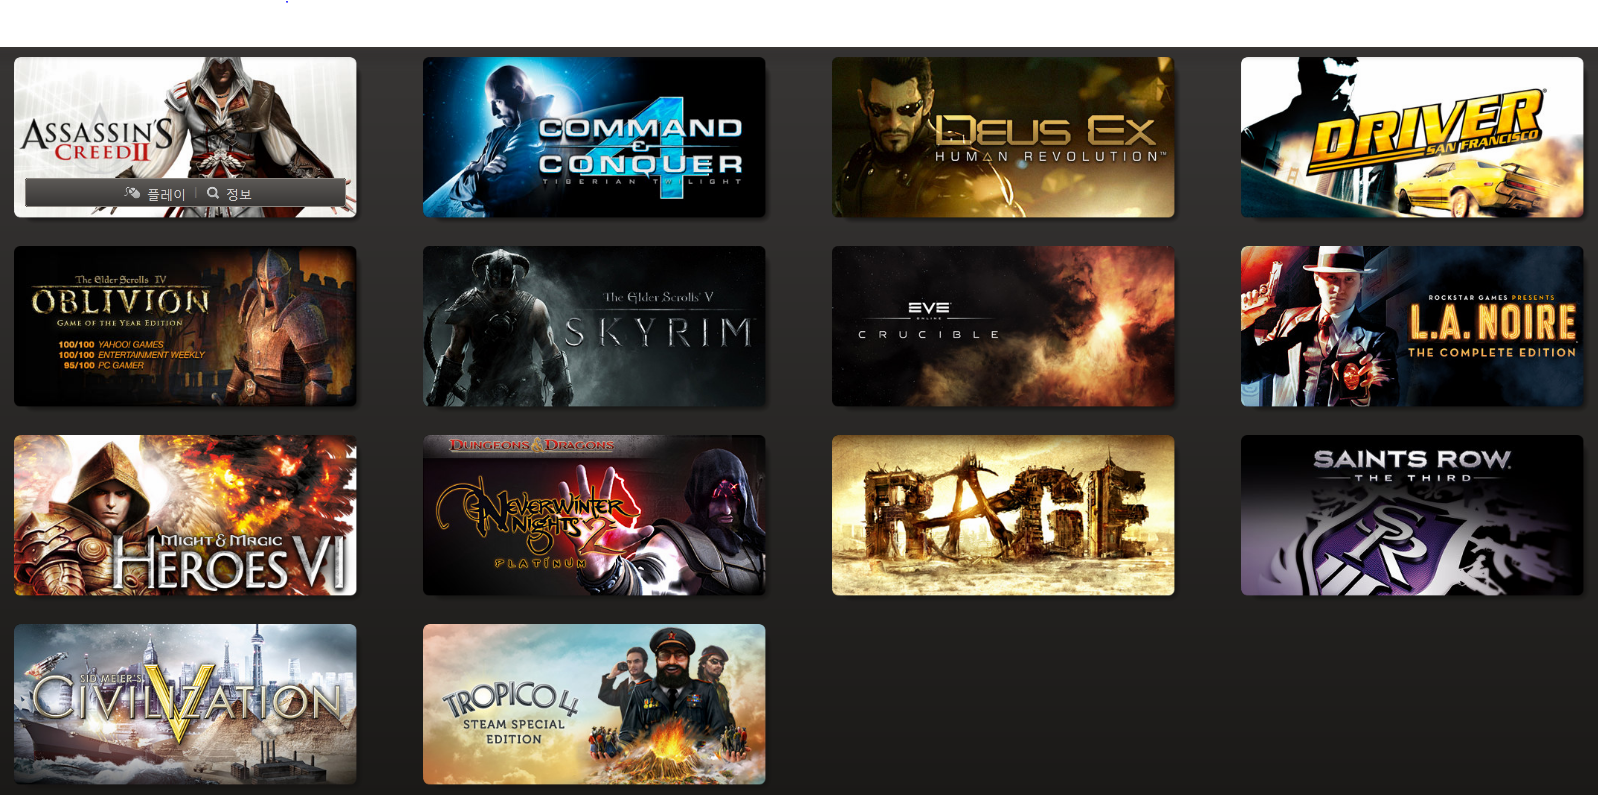 steam_2012-01-29.PNG